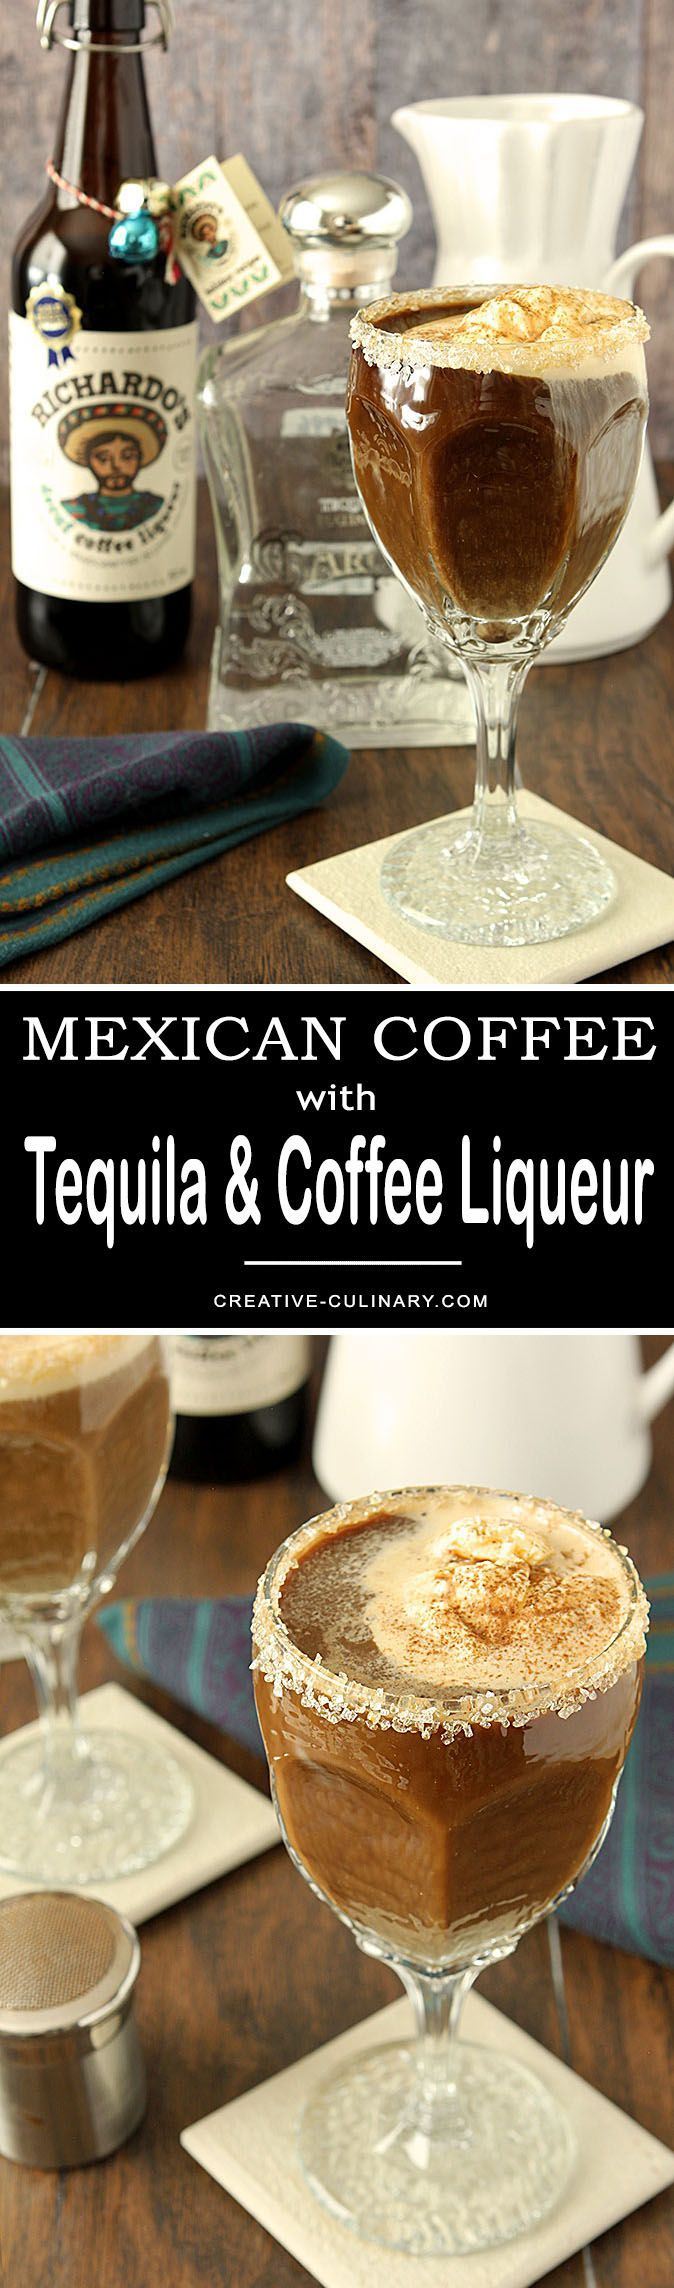 No trip to Cabo San Lucas necessary; now you can make this iconic Mexican Coffee with Tequila and Coffee Liqueur at home! via @creativculinary